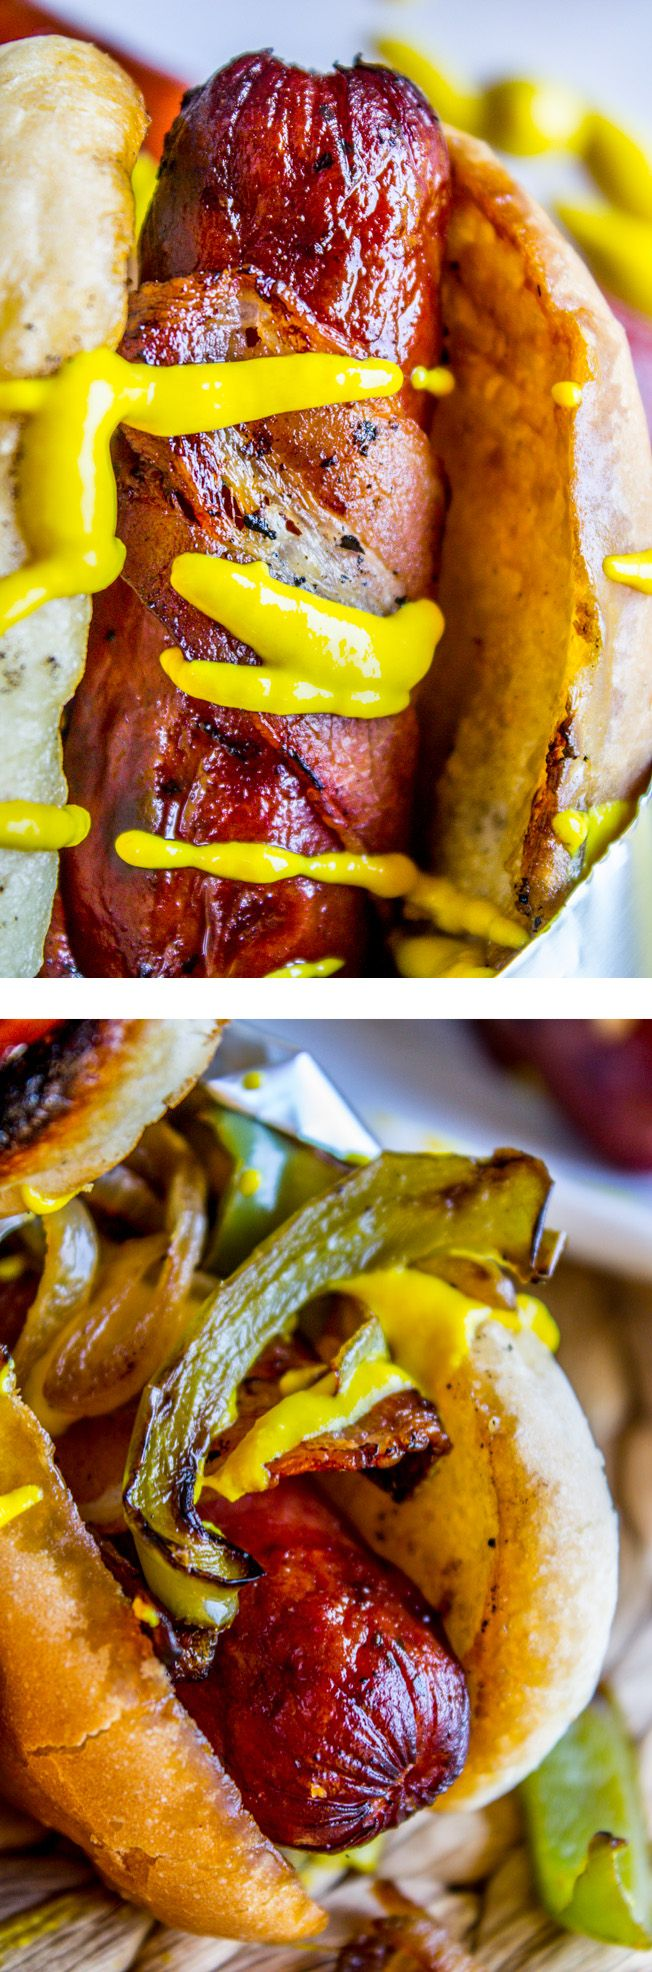 Hot dogs are good. Hot dogs wrapped in bacon? BETTER. Add some sautéed onions and peppers, a crispy grilled bun, and you are well on your way to summer perfection. These would be perfect for tailgating, summer cookouts, or Labor Day BBQs!